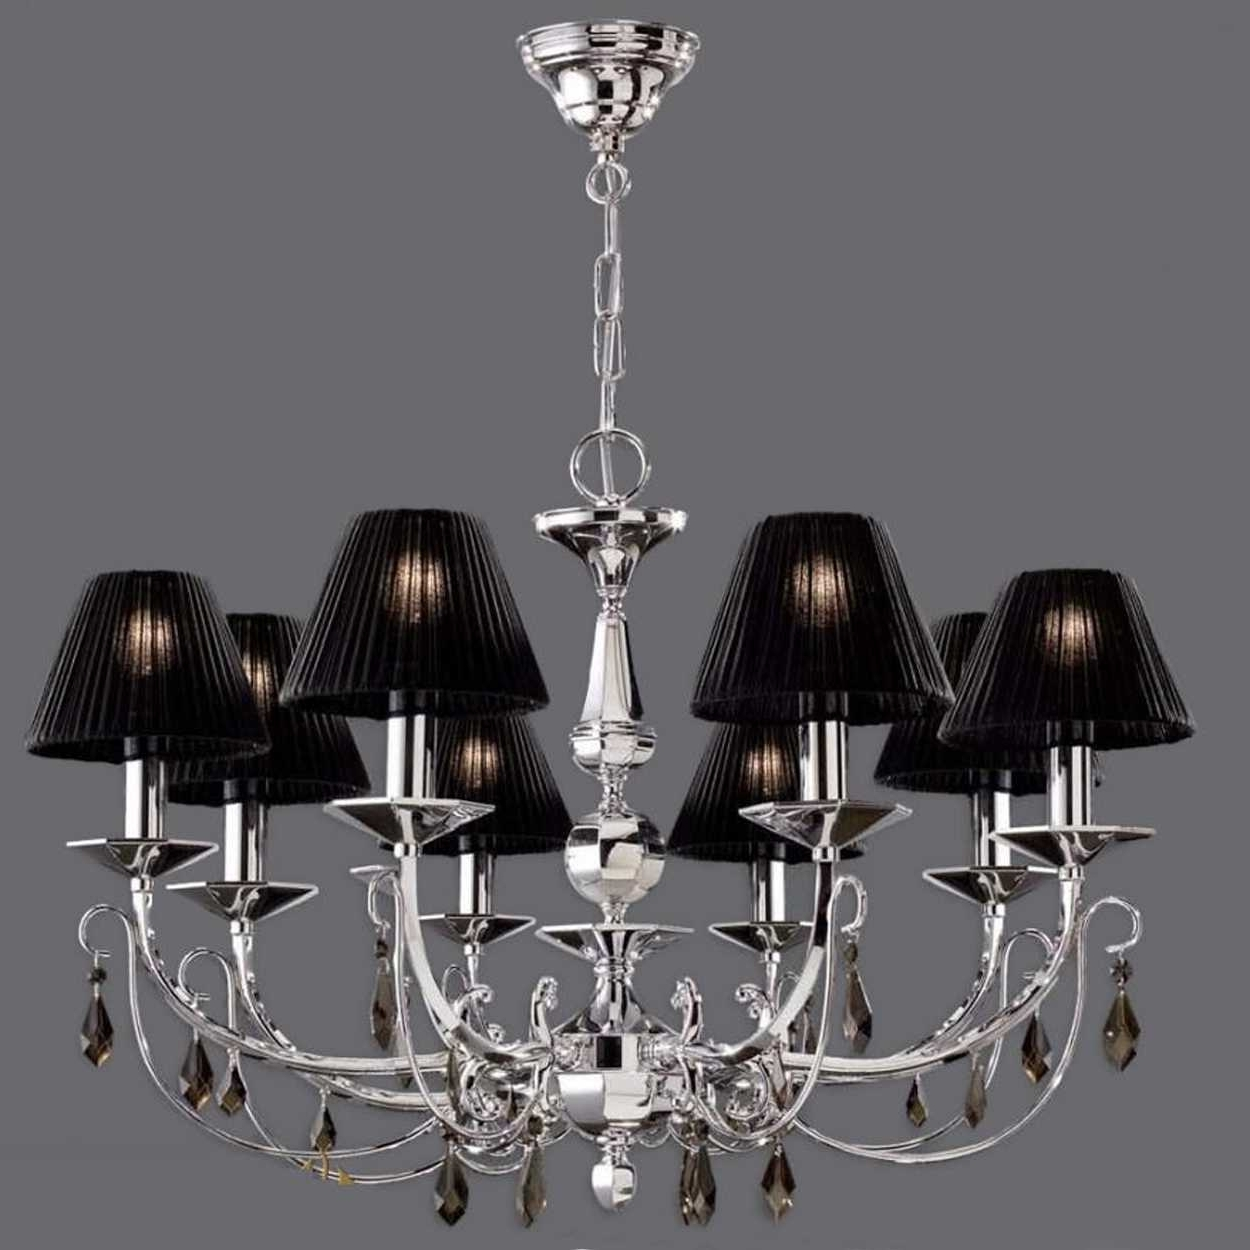 Most Popular Black Lamp Shade With Crystals Fringed Also Chandeliers Design Intended For Chandelier Lampshades (View 16 of 20)